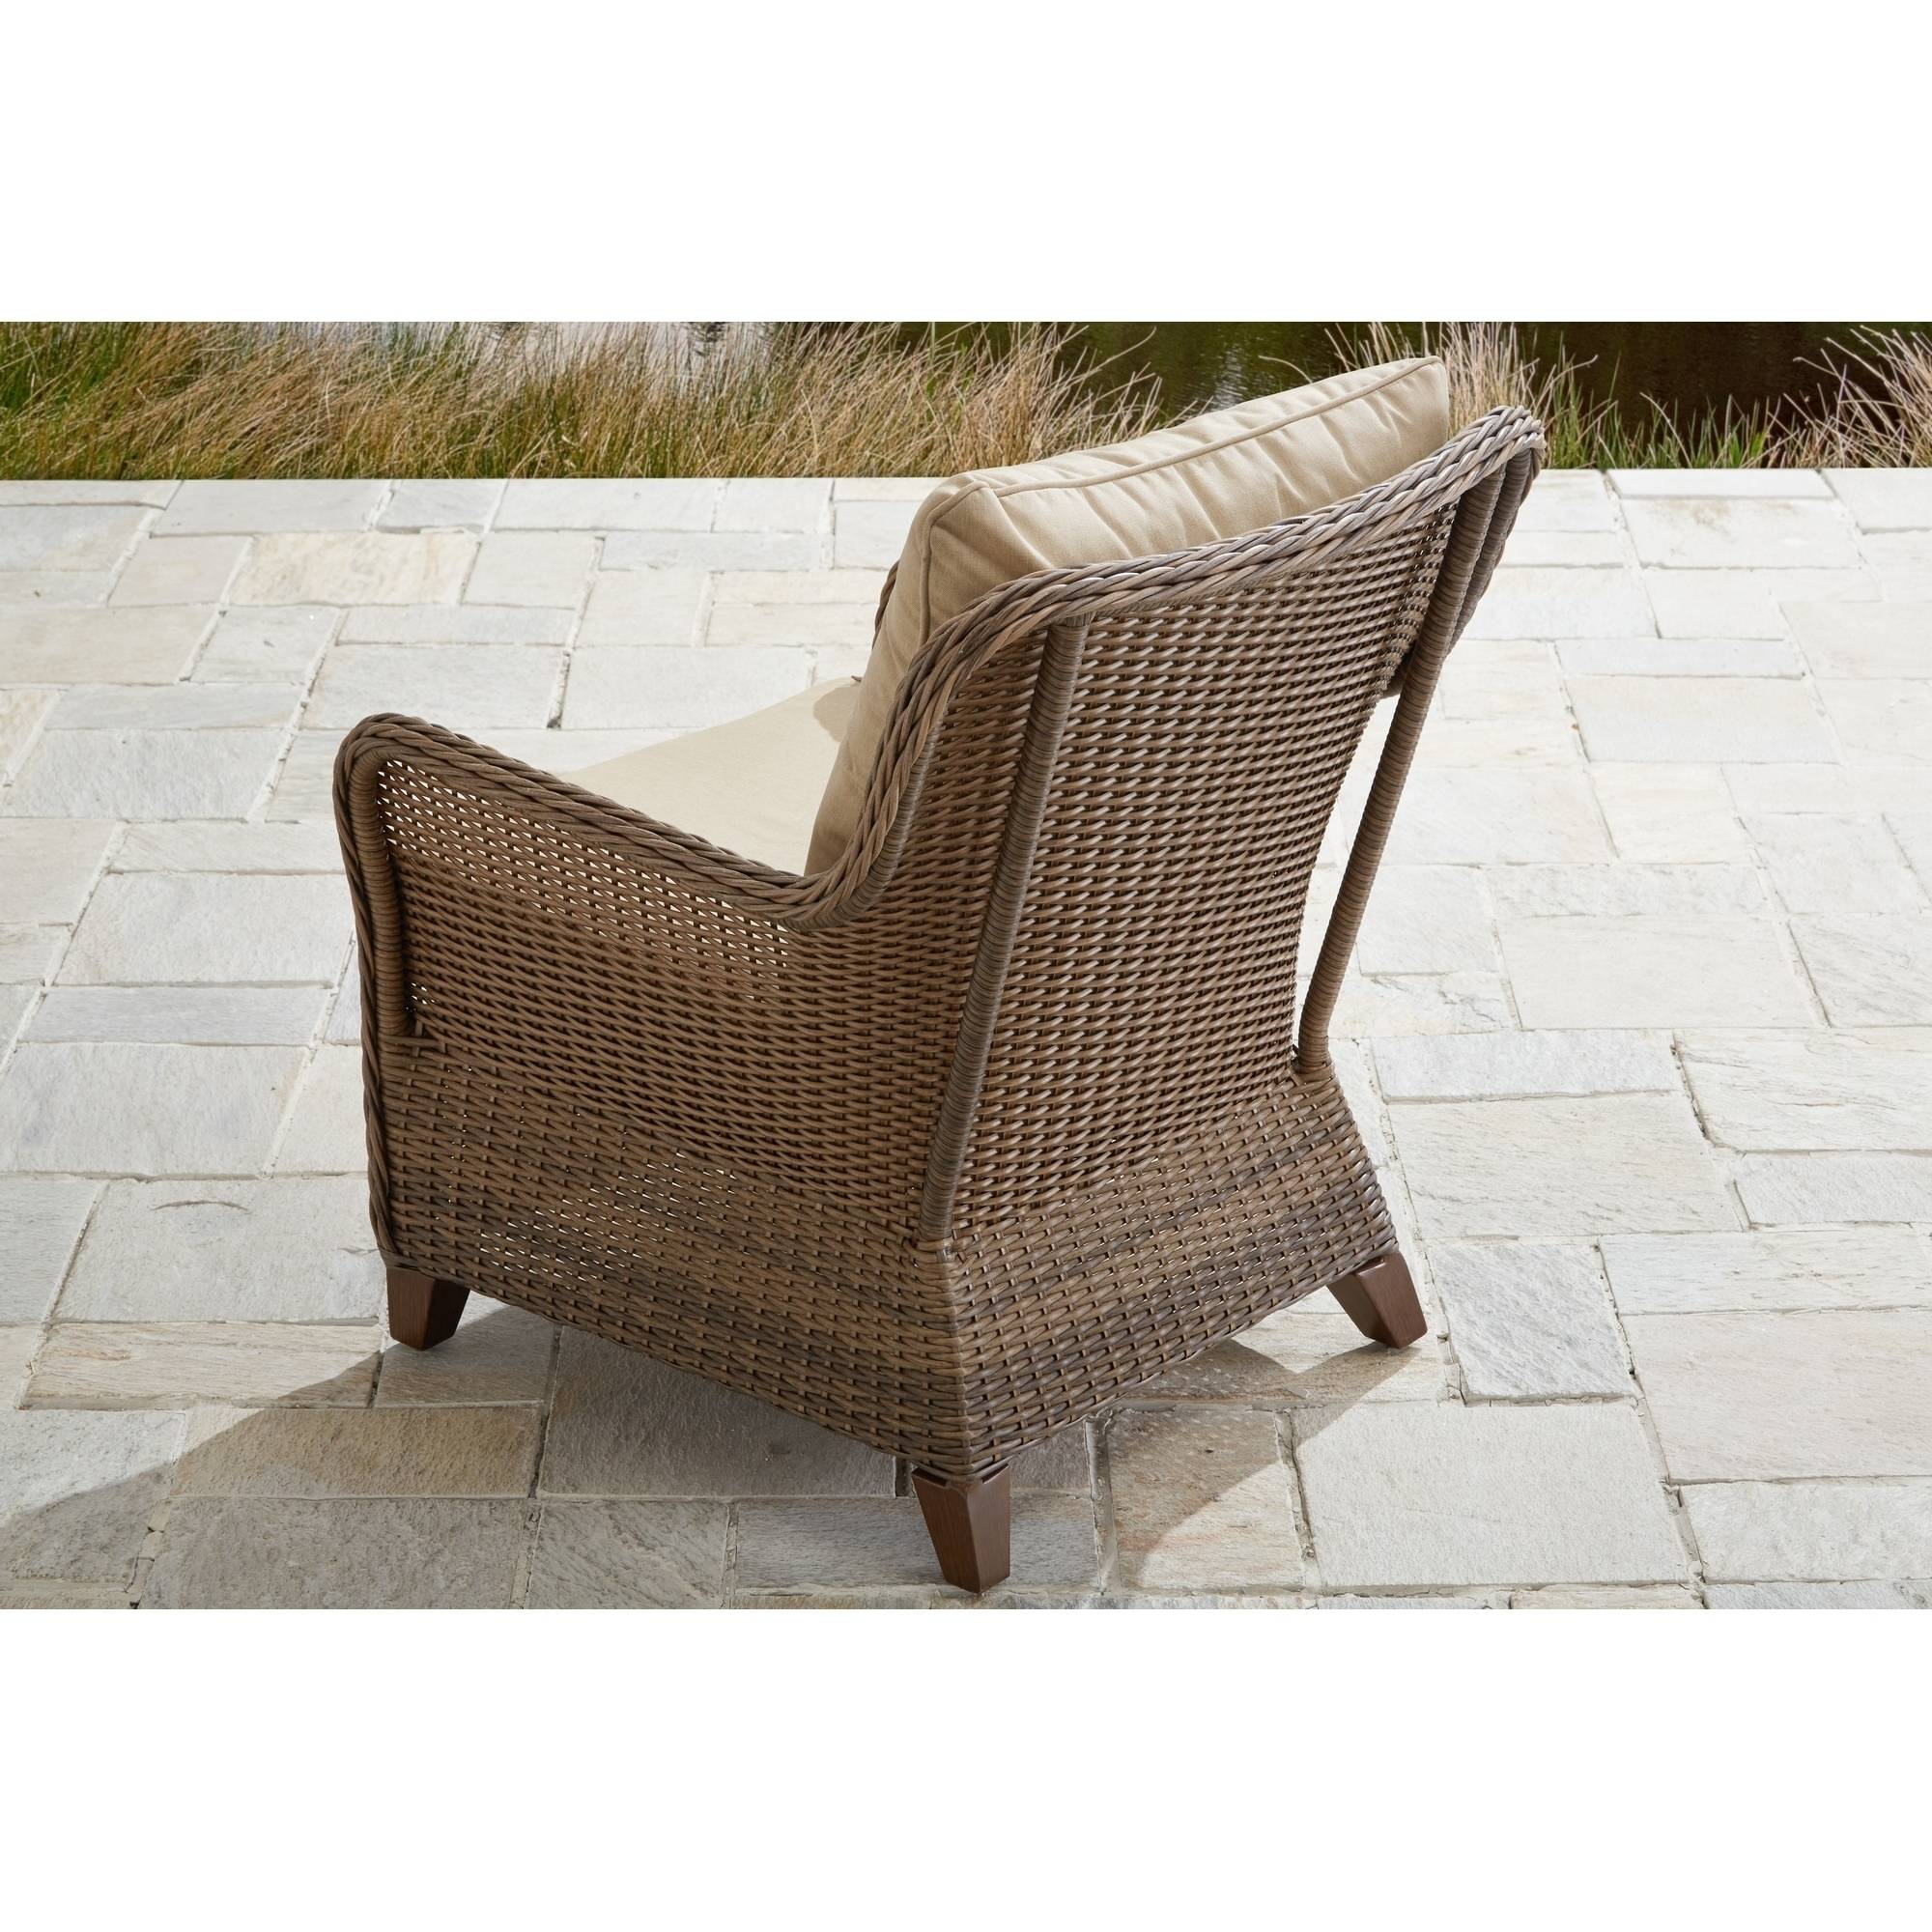 Metal outdoor club chairs - Better Homes And Gardens Camrose Farmhouse 4 Piece Conversation Set Walmart Com